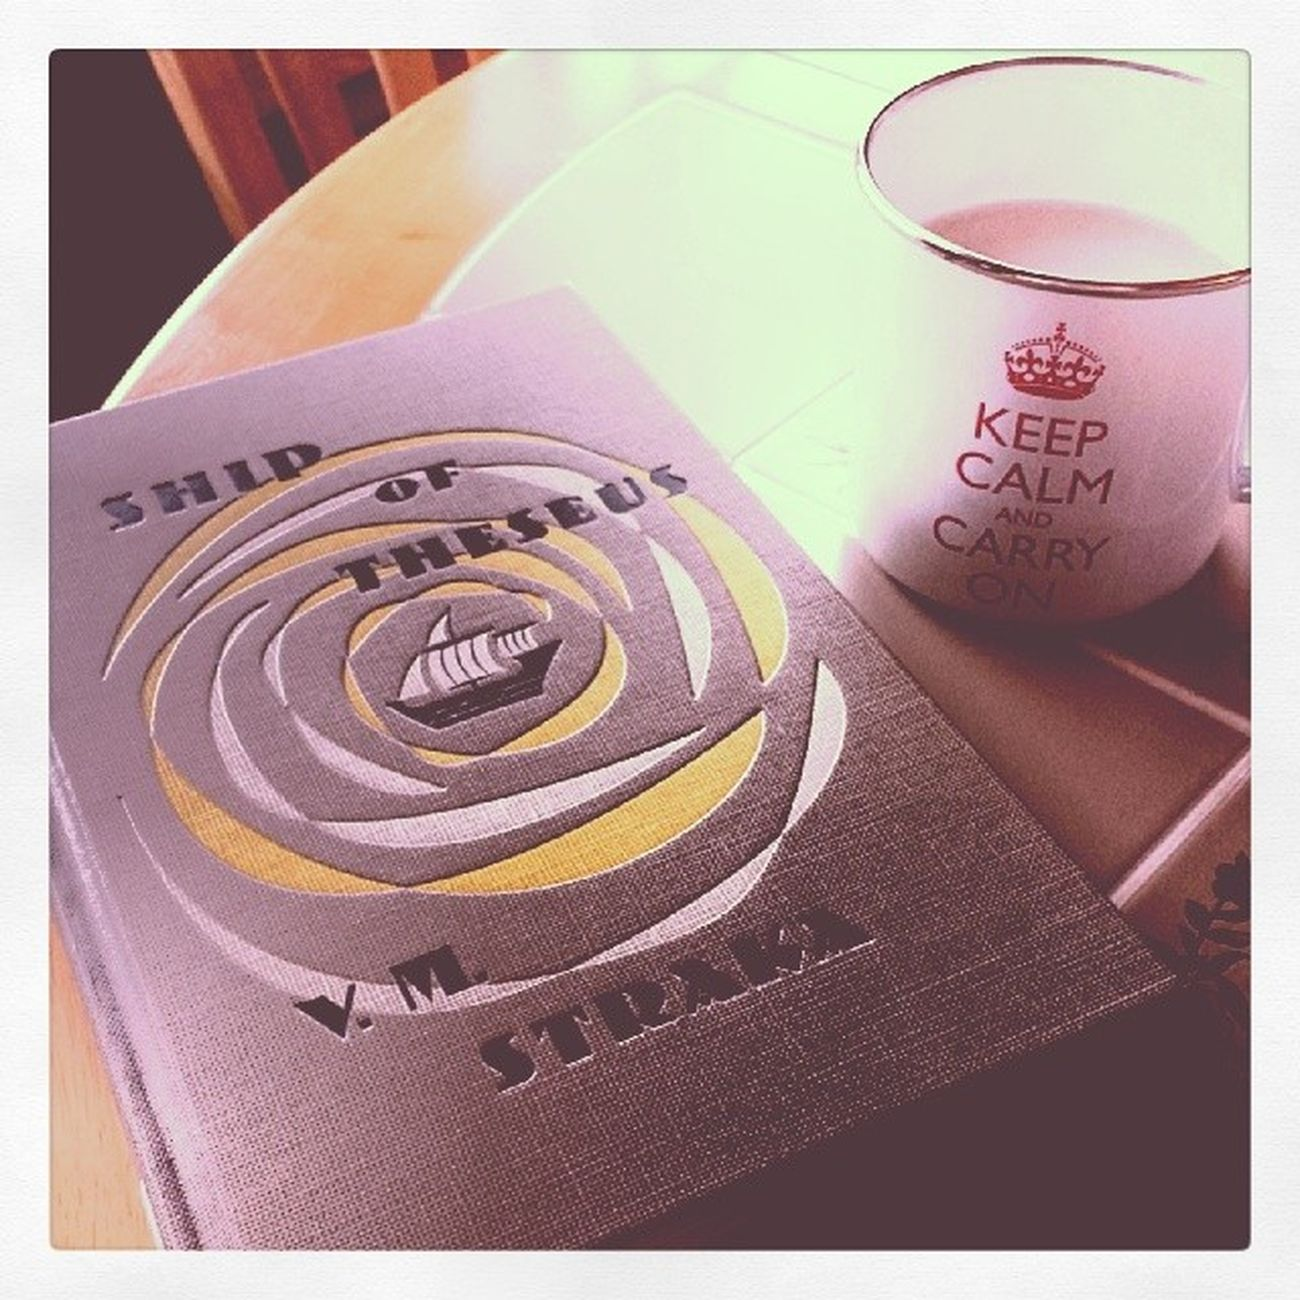 This book. This coffee. Lazy afternoon 100daysofhappy Jjabrams Dougdorst Reading lazysaturday happyme